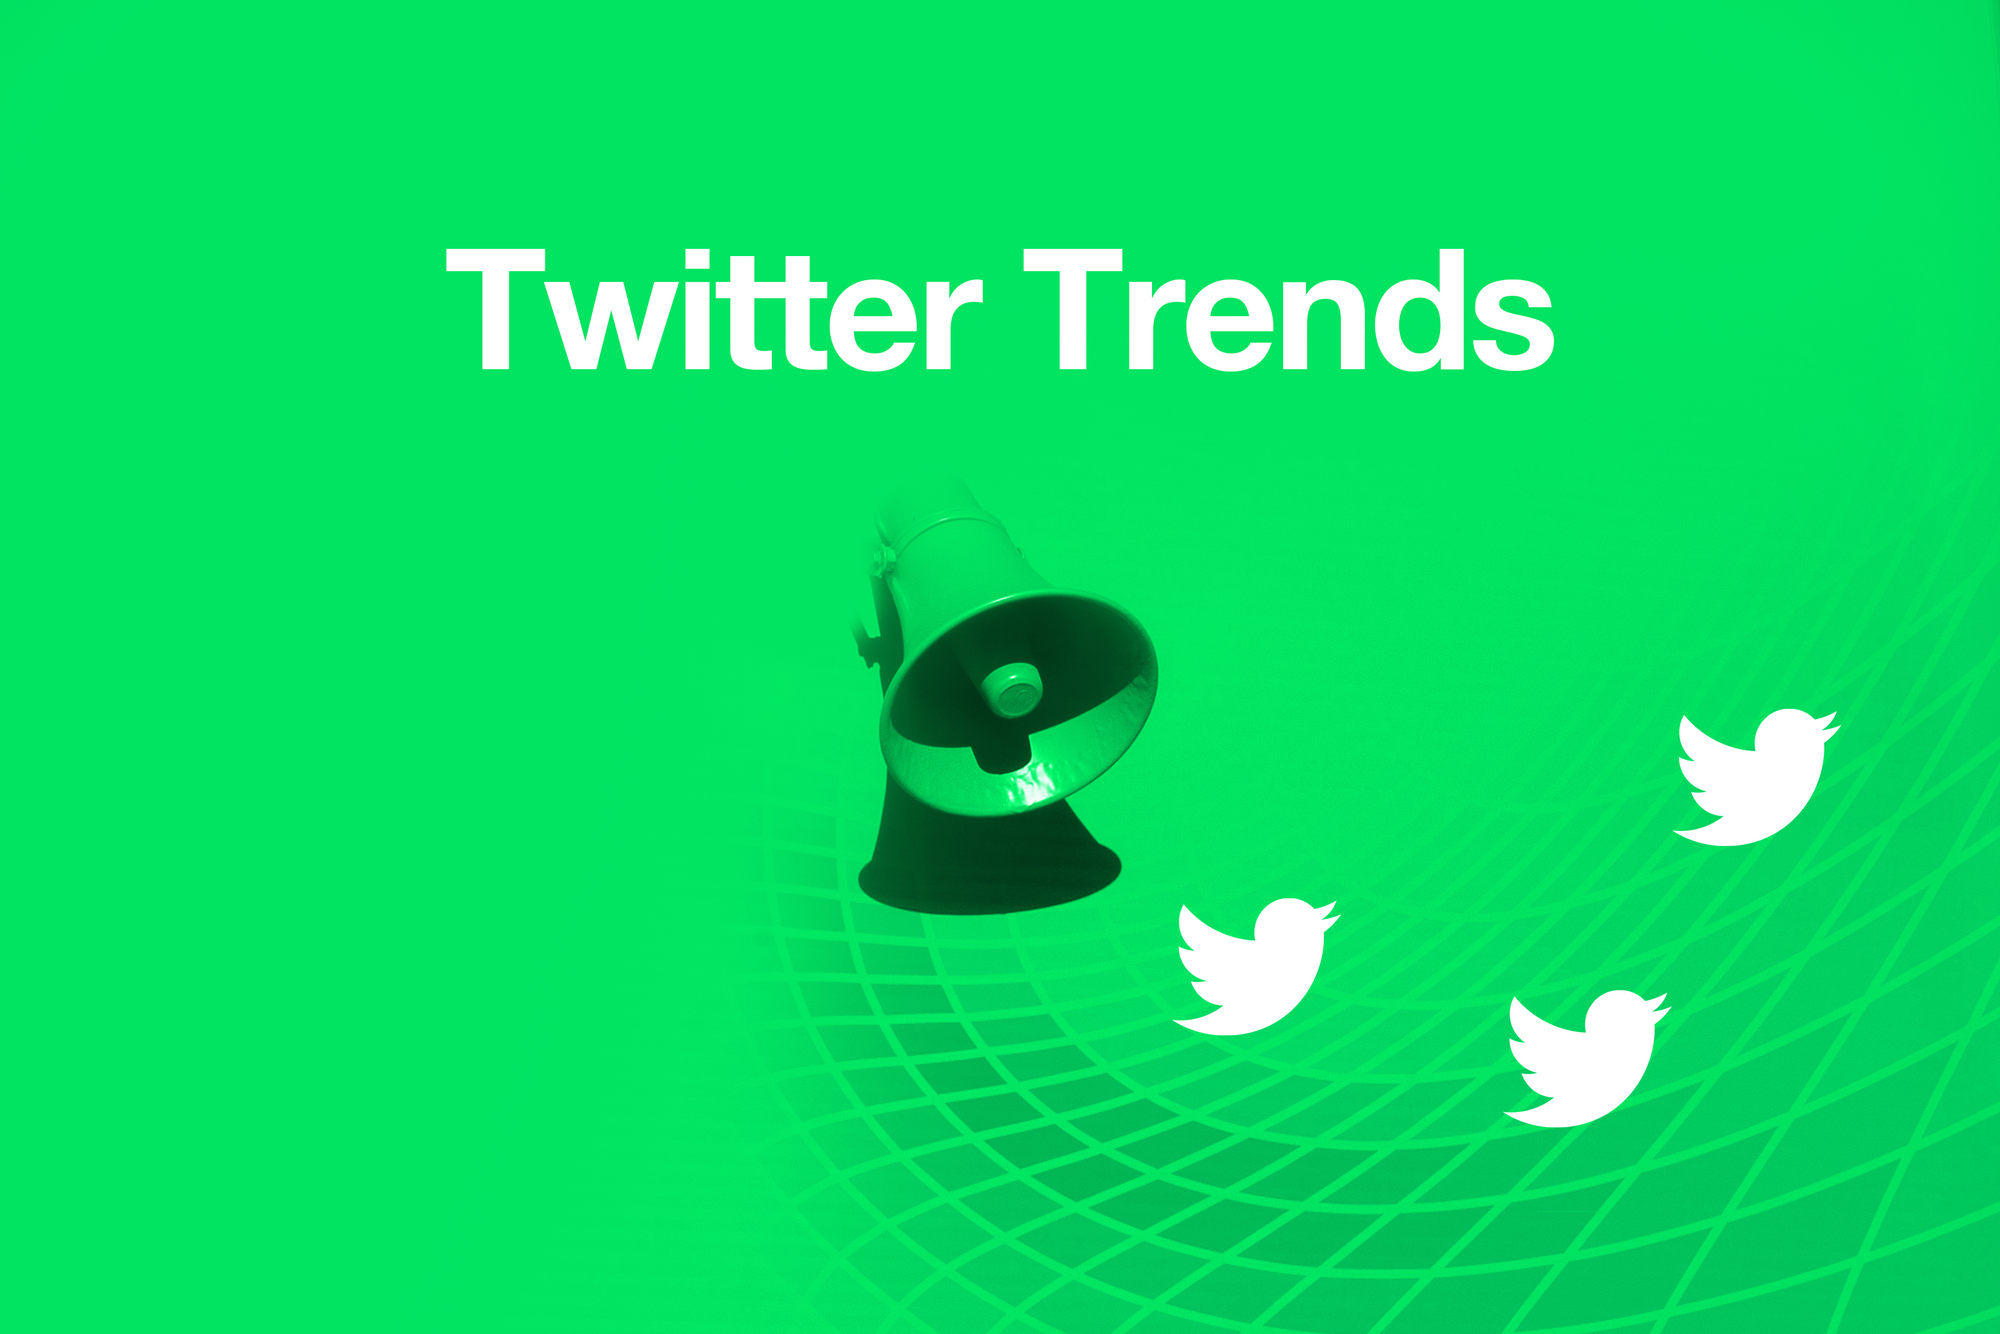 Twitter Trends: How to Find and Use the Right Trending Topics